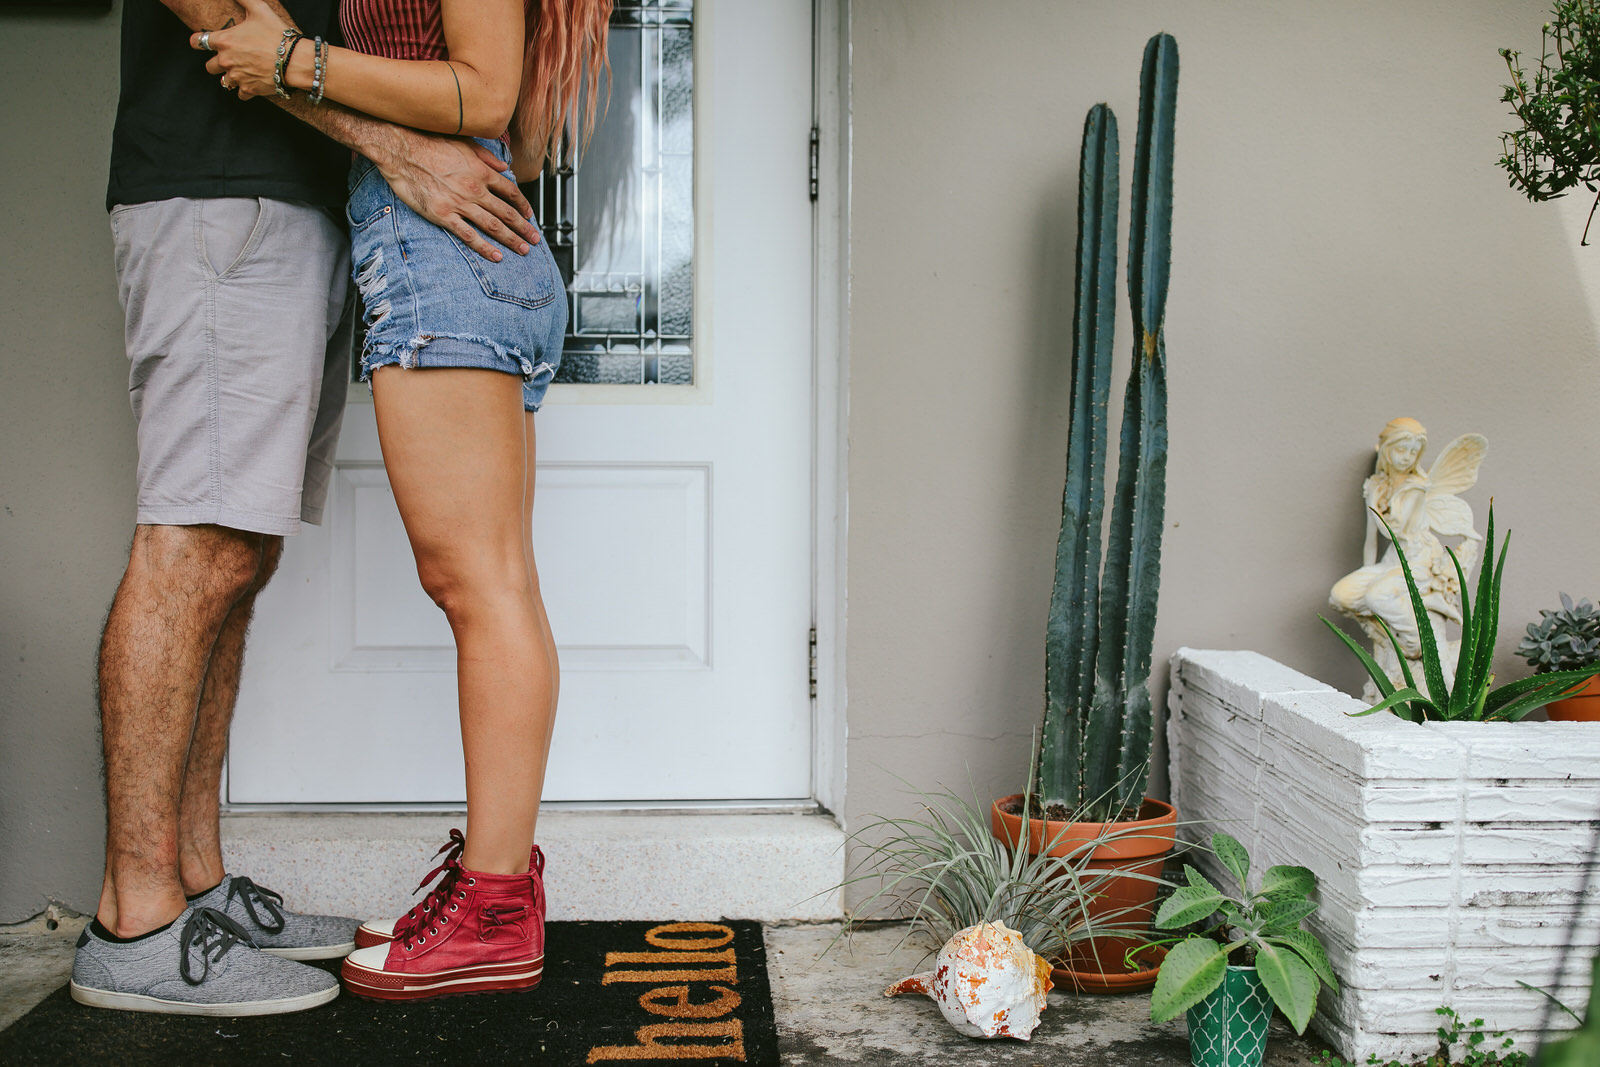 engagement-session-fort-lauderdale-day-in-the-life-tiny-house-photo-1.jpg